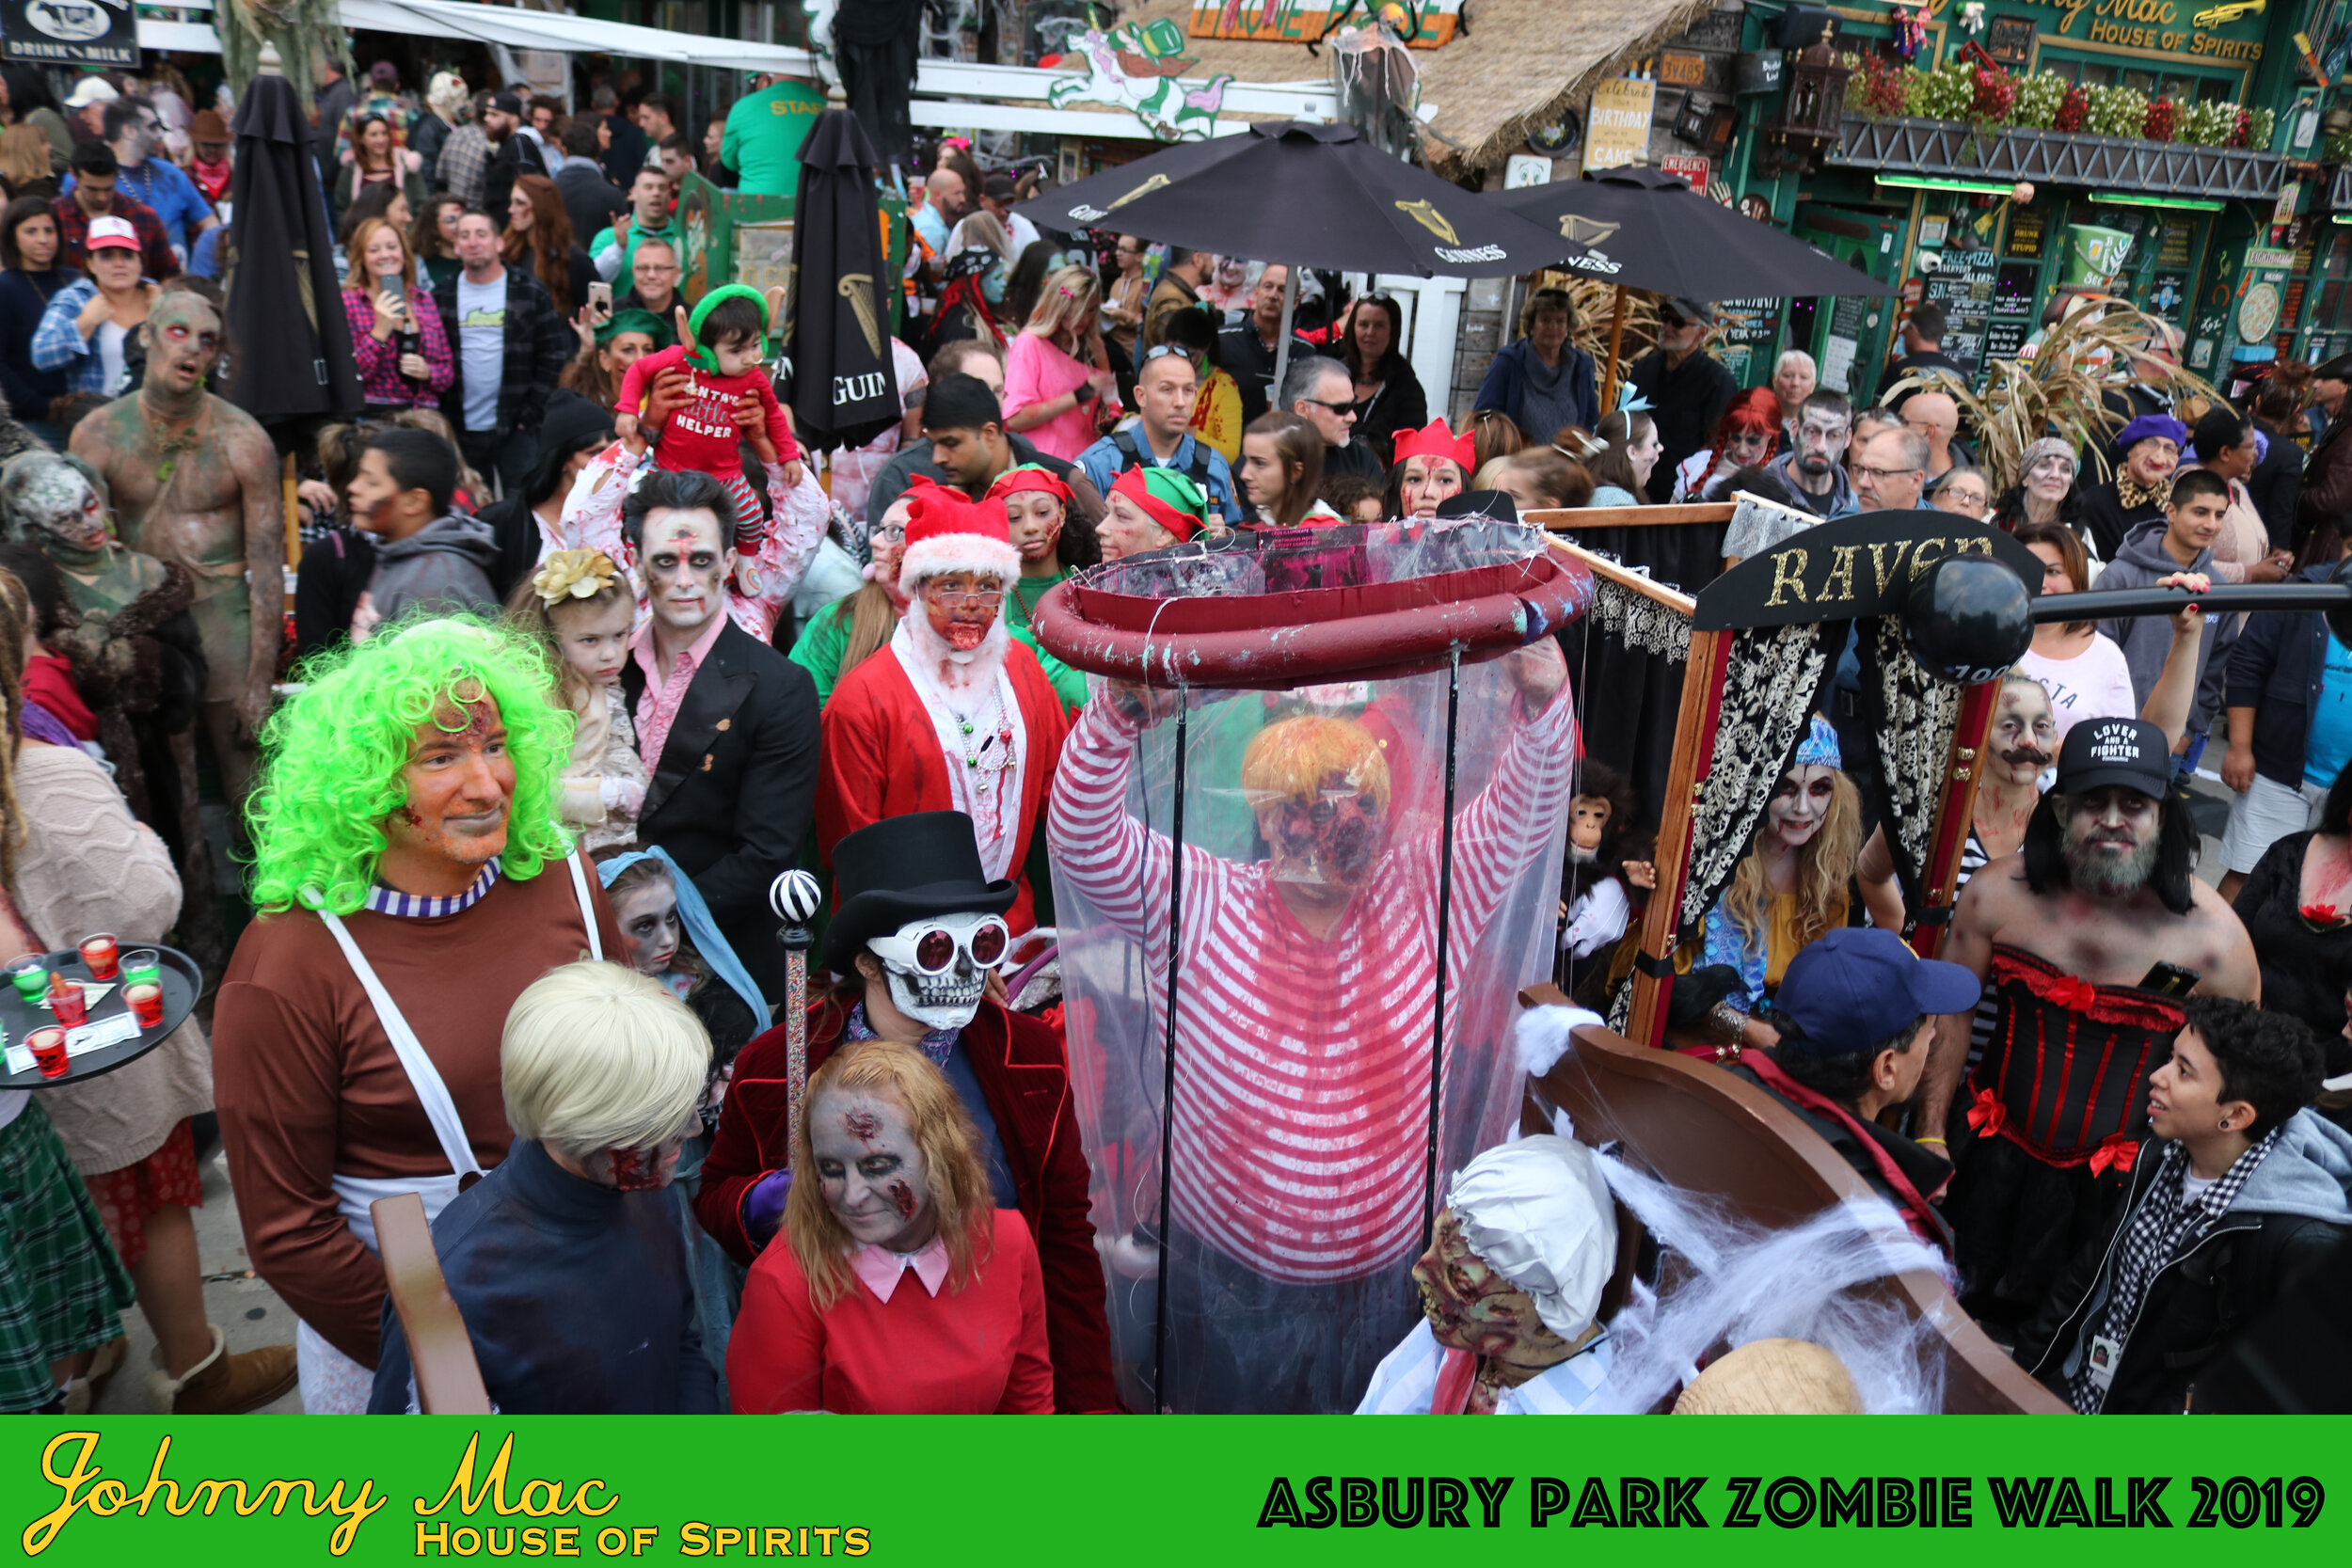 Asbury Park Zombie Walk 2019 - Click here for all photos